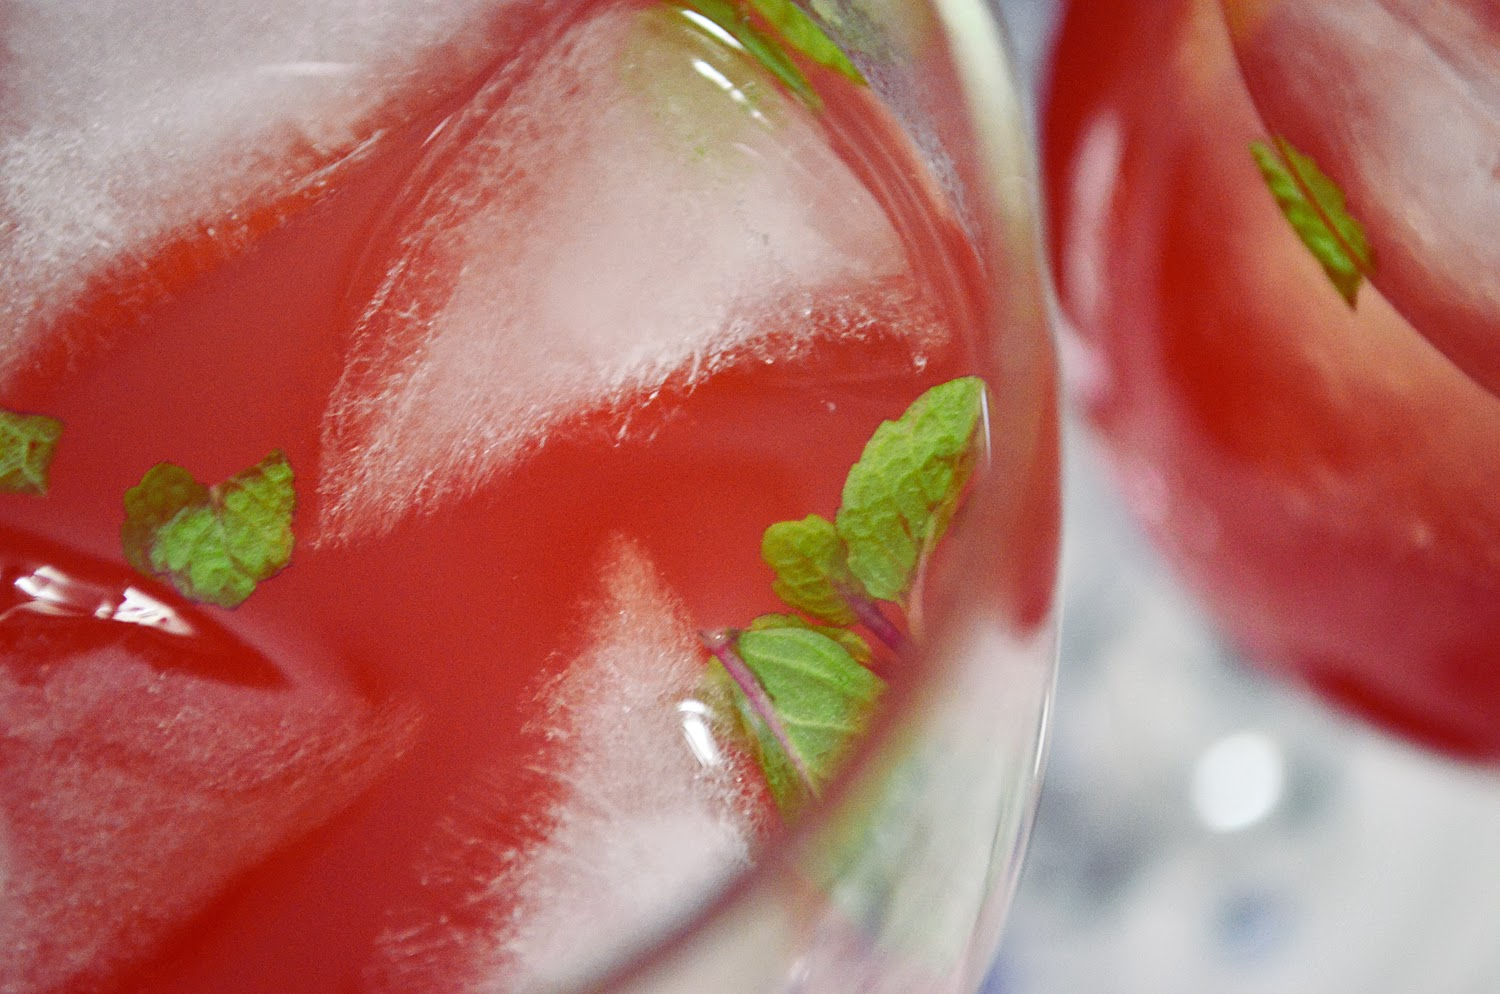 Spring/Summer Cranberry Cocktails